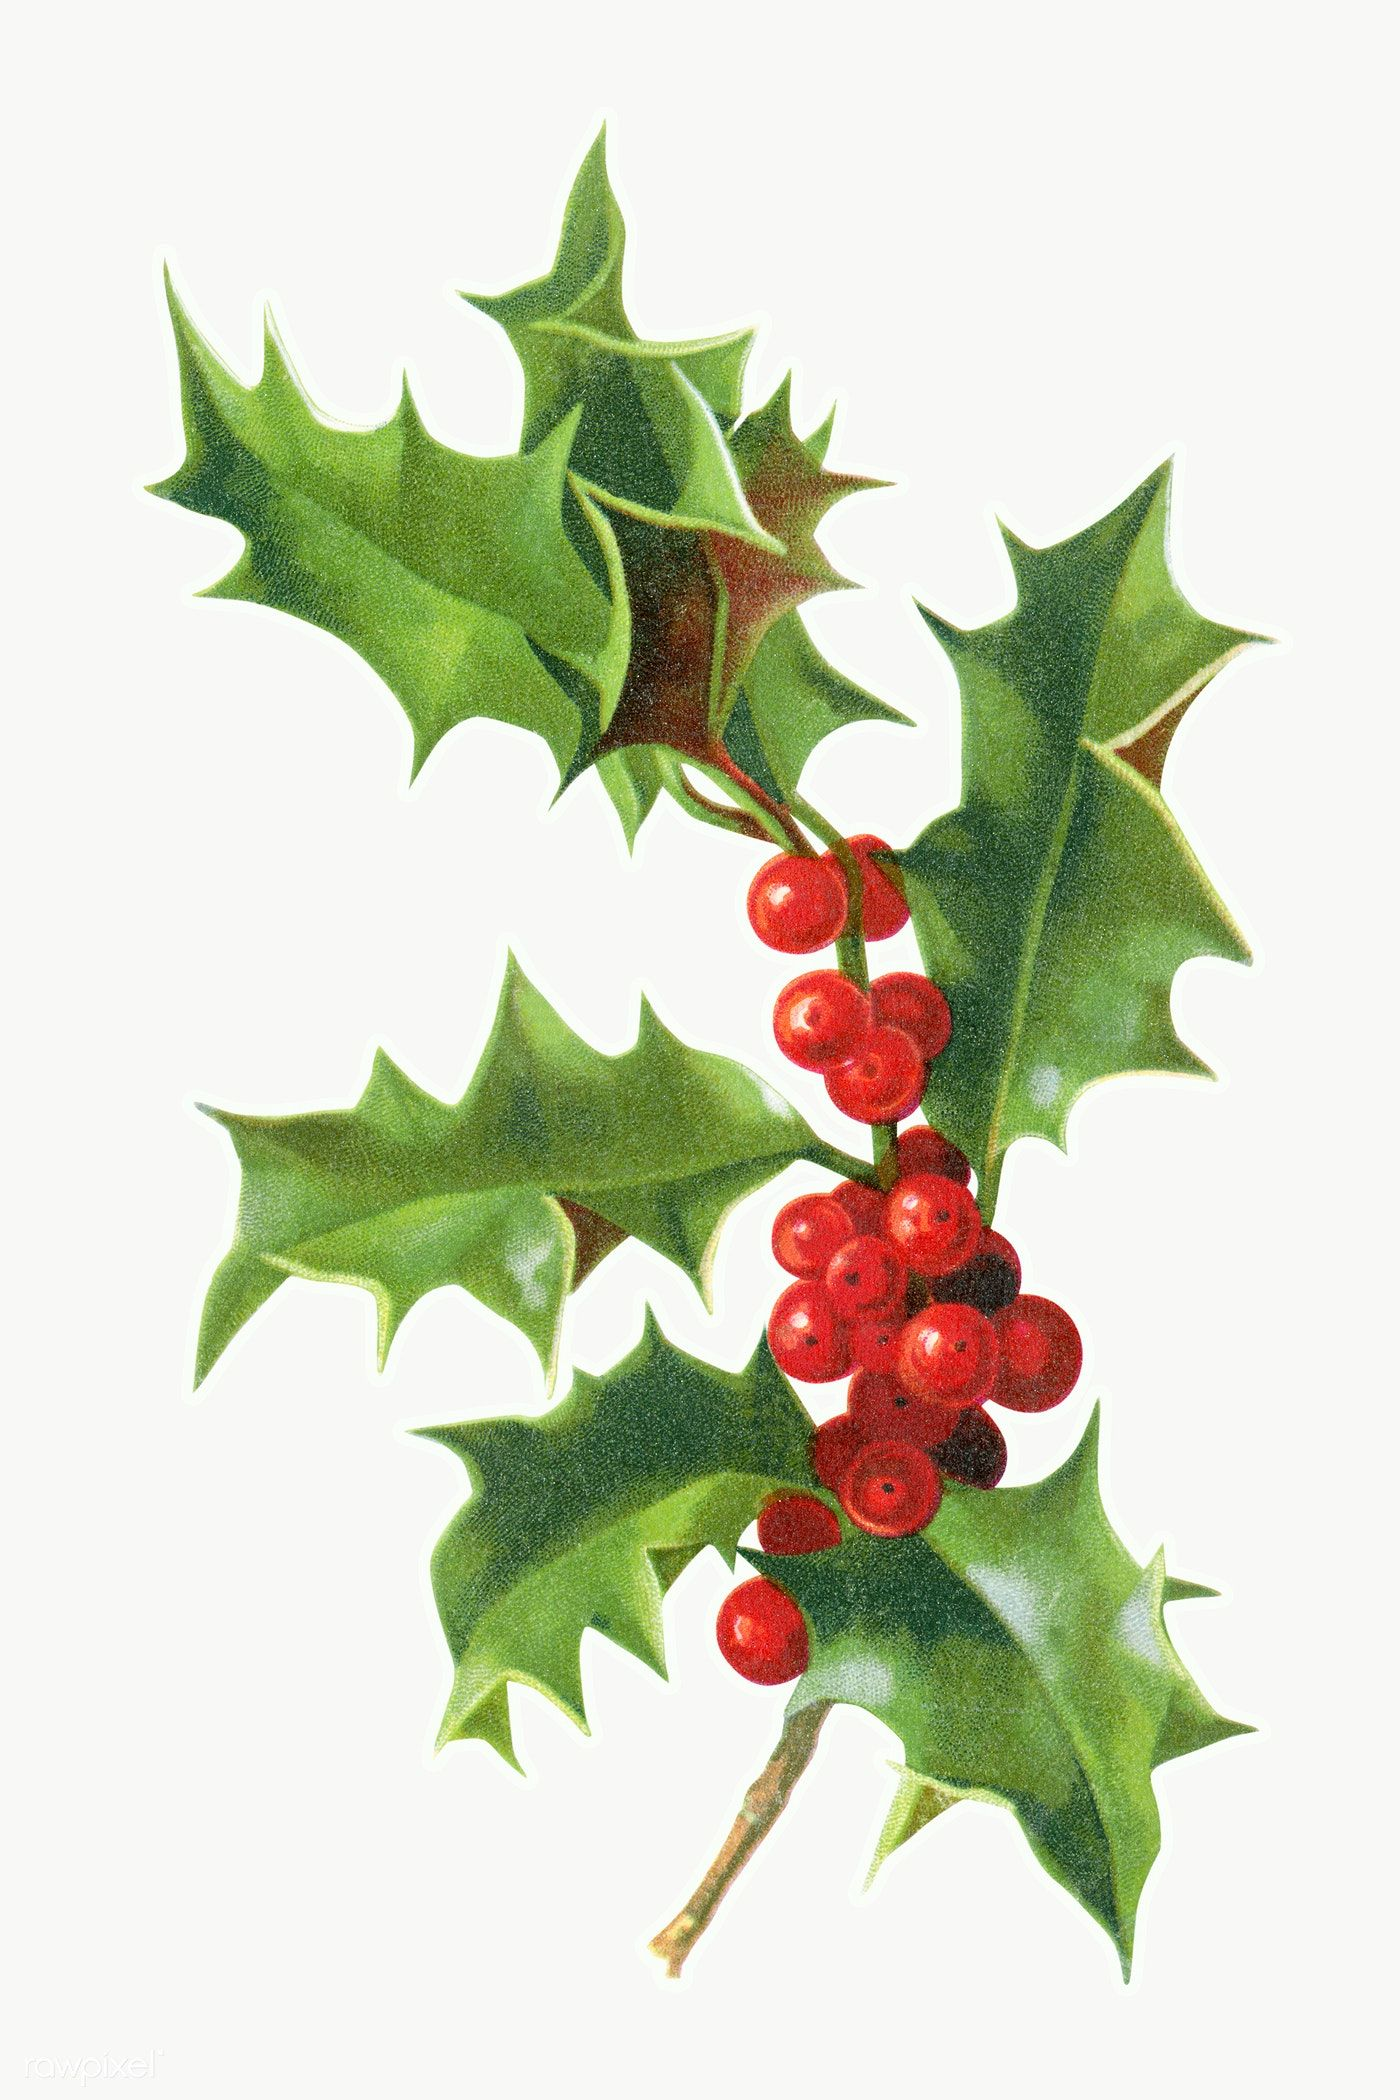 Download Premium Png Of Festive Holly Leaves Transparent Png 1232668 Holly Leaf Vintage Christmas Xmas Drawing